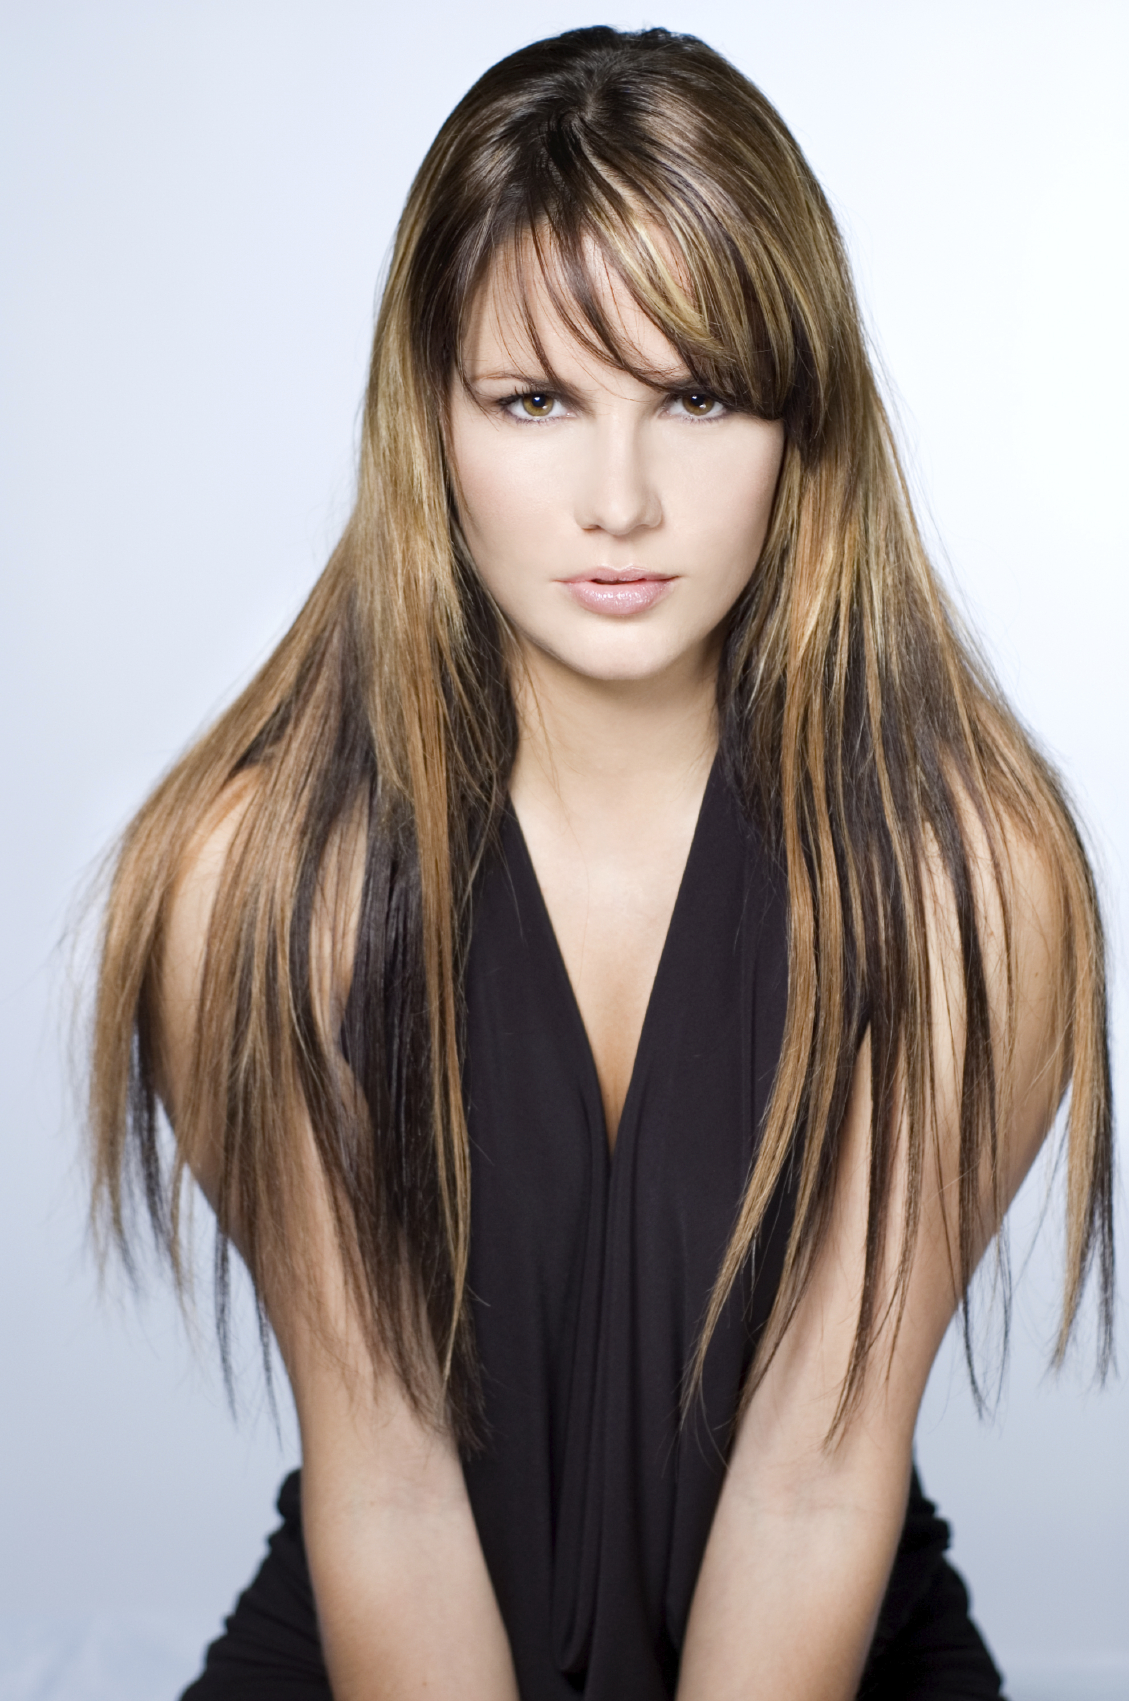 Matching Your Hair Color Using Toppik Hair Fibers Toppikcom - Hairstyle color blonde